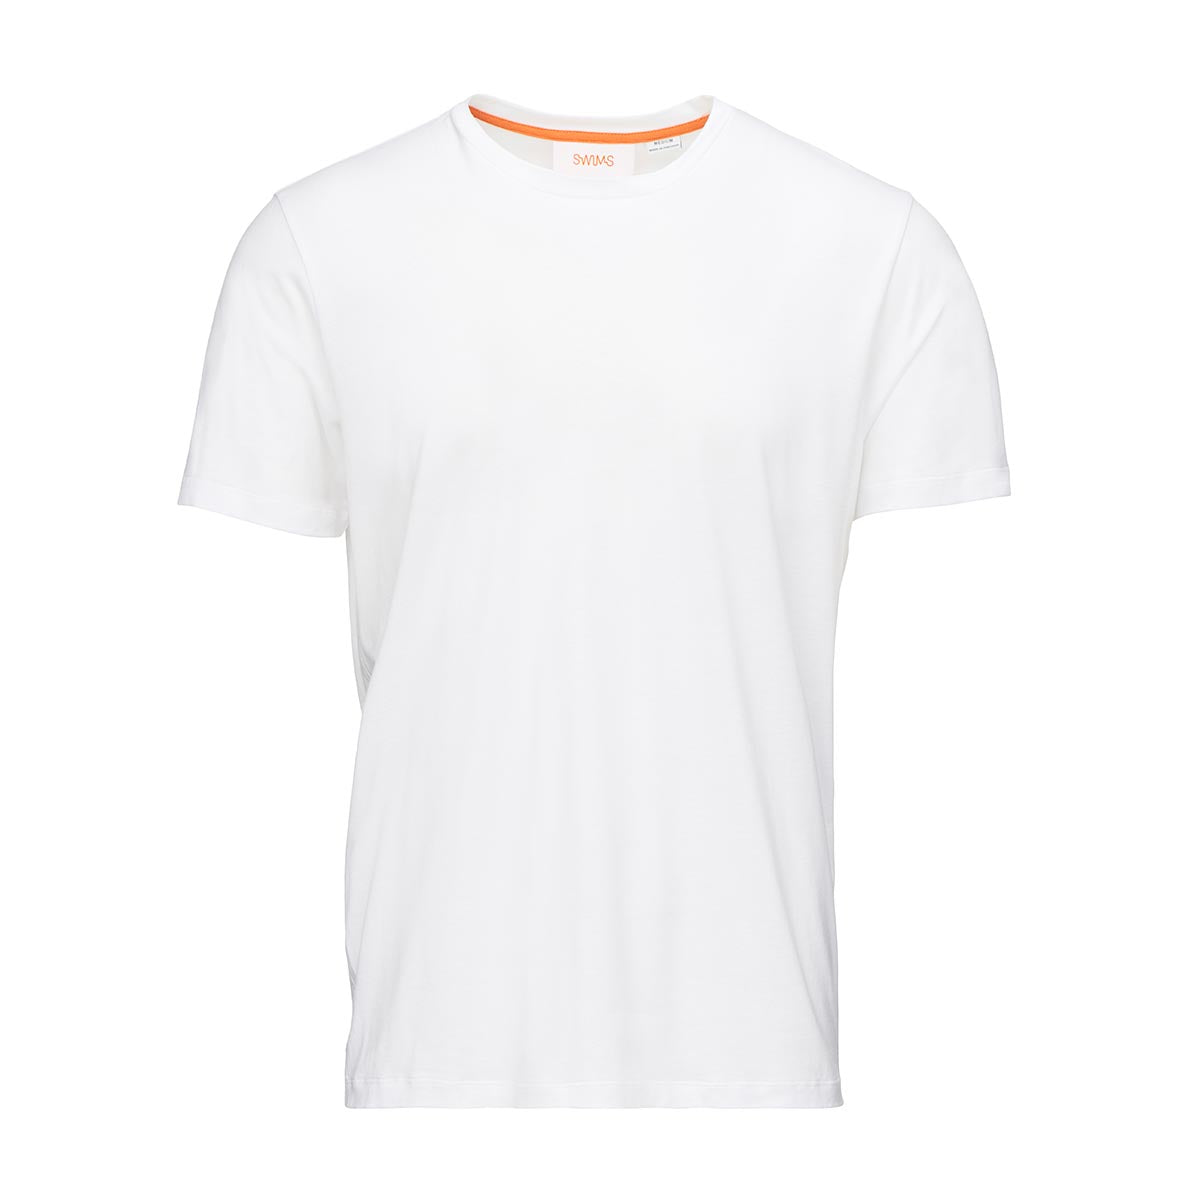 Breeze Ervik T-shirt - background::white,variant::White